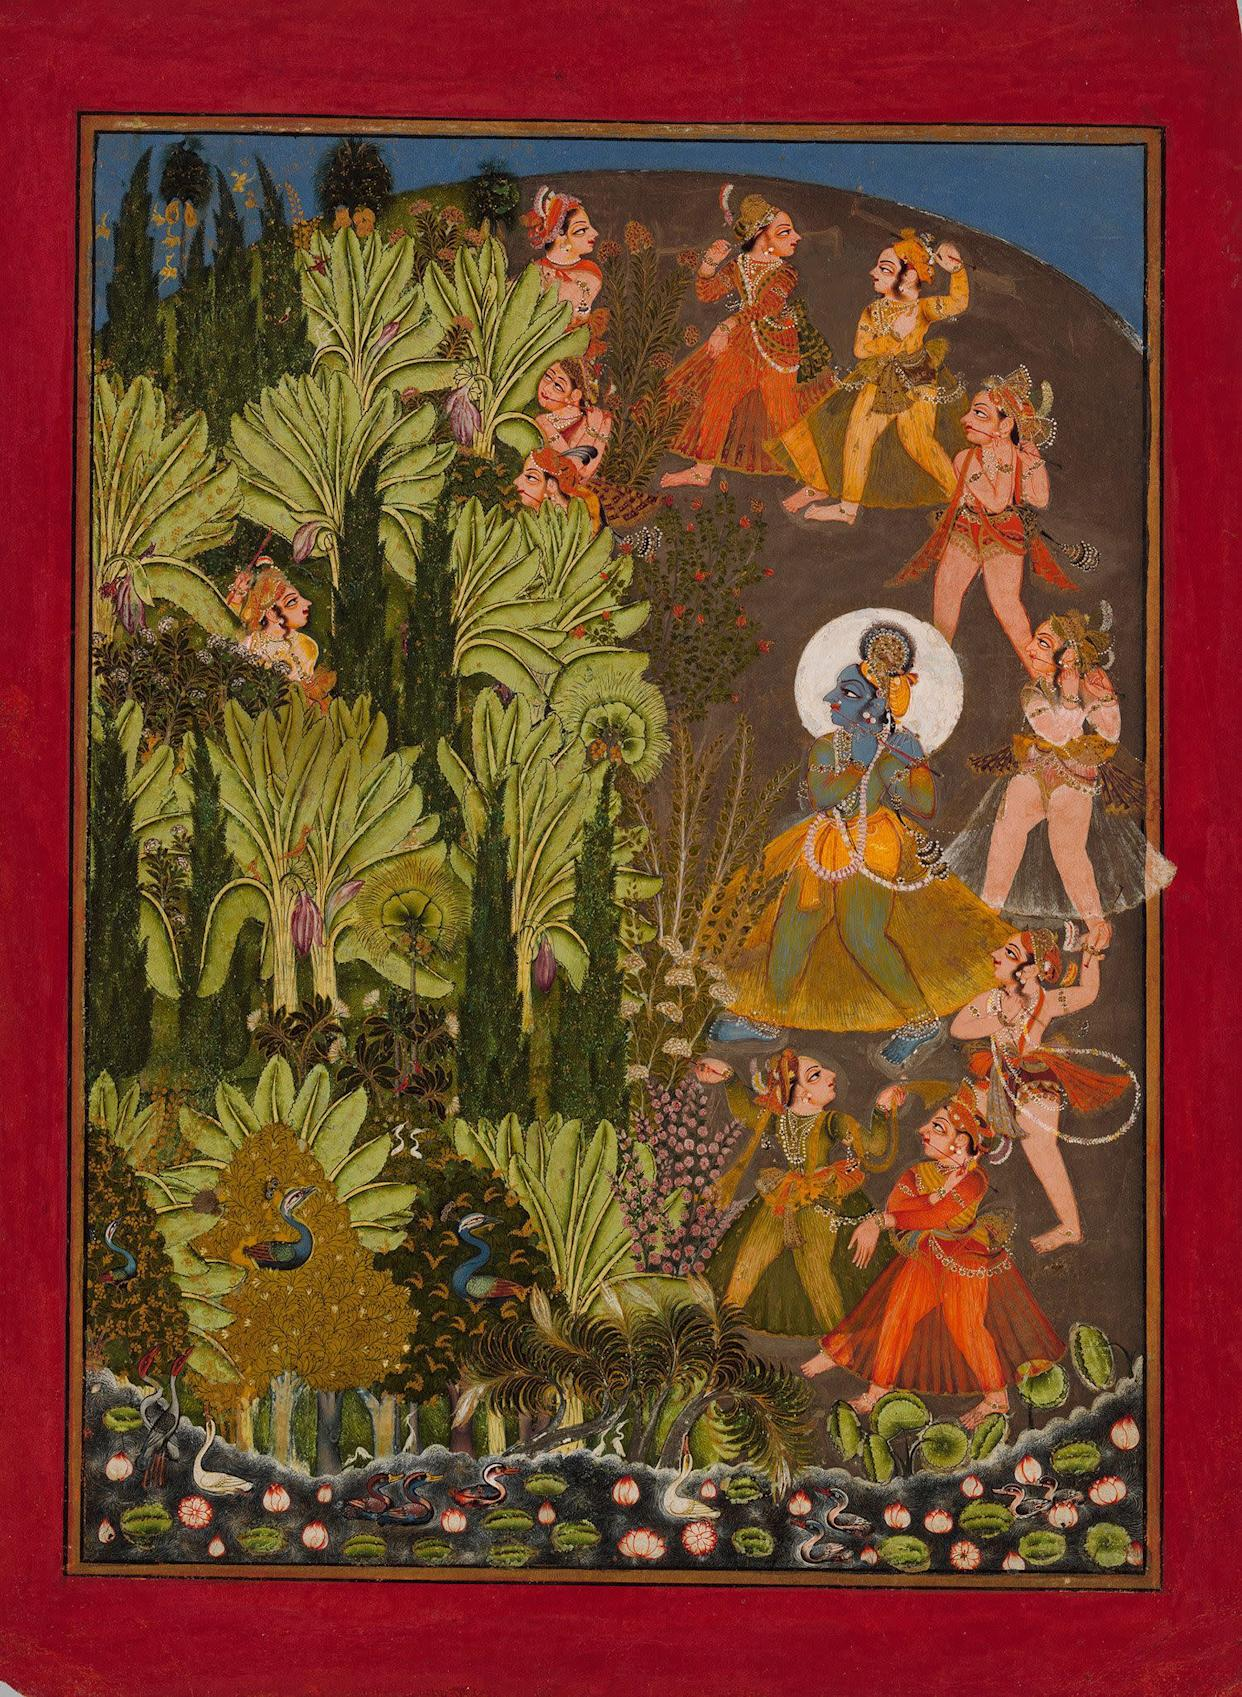 &quot;A&amp;nbsp;Krishna and the Gopas (Cow Herders) Enter the&amp;nbsp;Forest,&quot;<strong>&amp;nbsp;</strong>Possibly by Kota Master.&amp;nbsp;Rajasthan, kingdom of Kota, ca. 1720,&amp;nbsp;Opaque watercolor and gold on paper; red border with&amp;nbsp;black-lined gold inner rule; painting 10 1/2 x 7 3/4 in.&amp;nbsp;Promised Gift of the Kronos Collections, 2015.